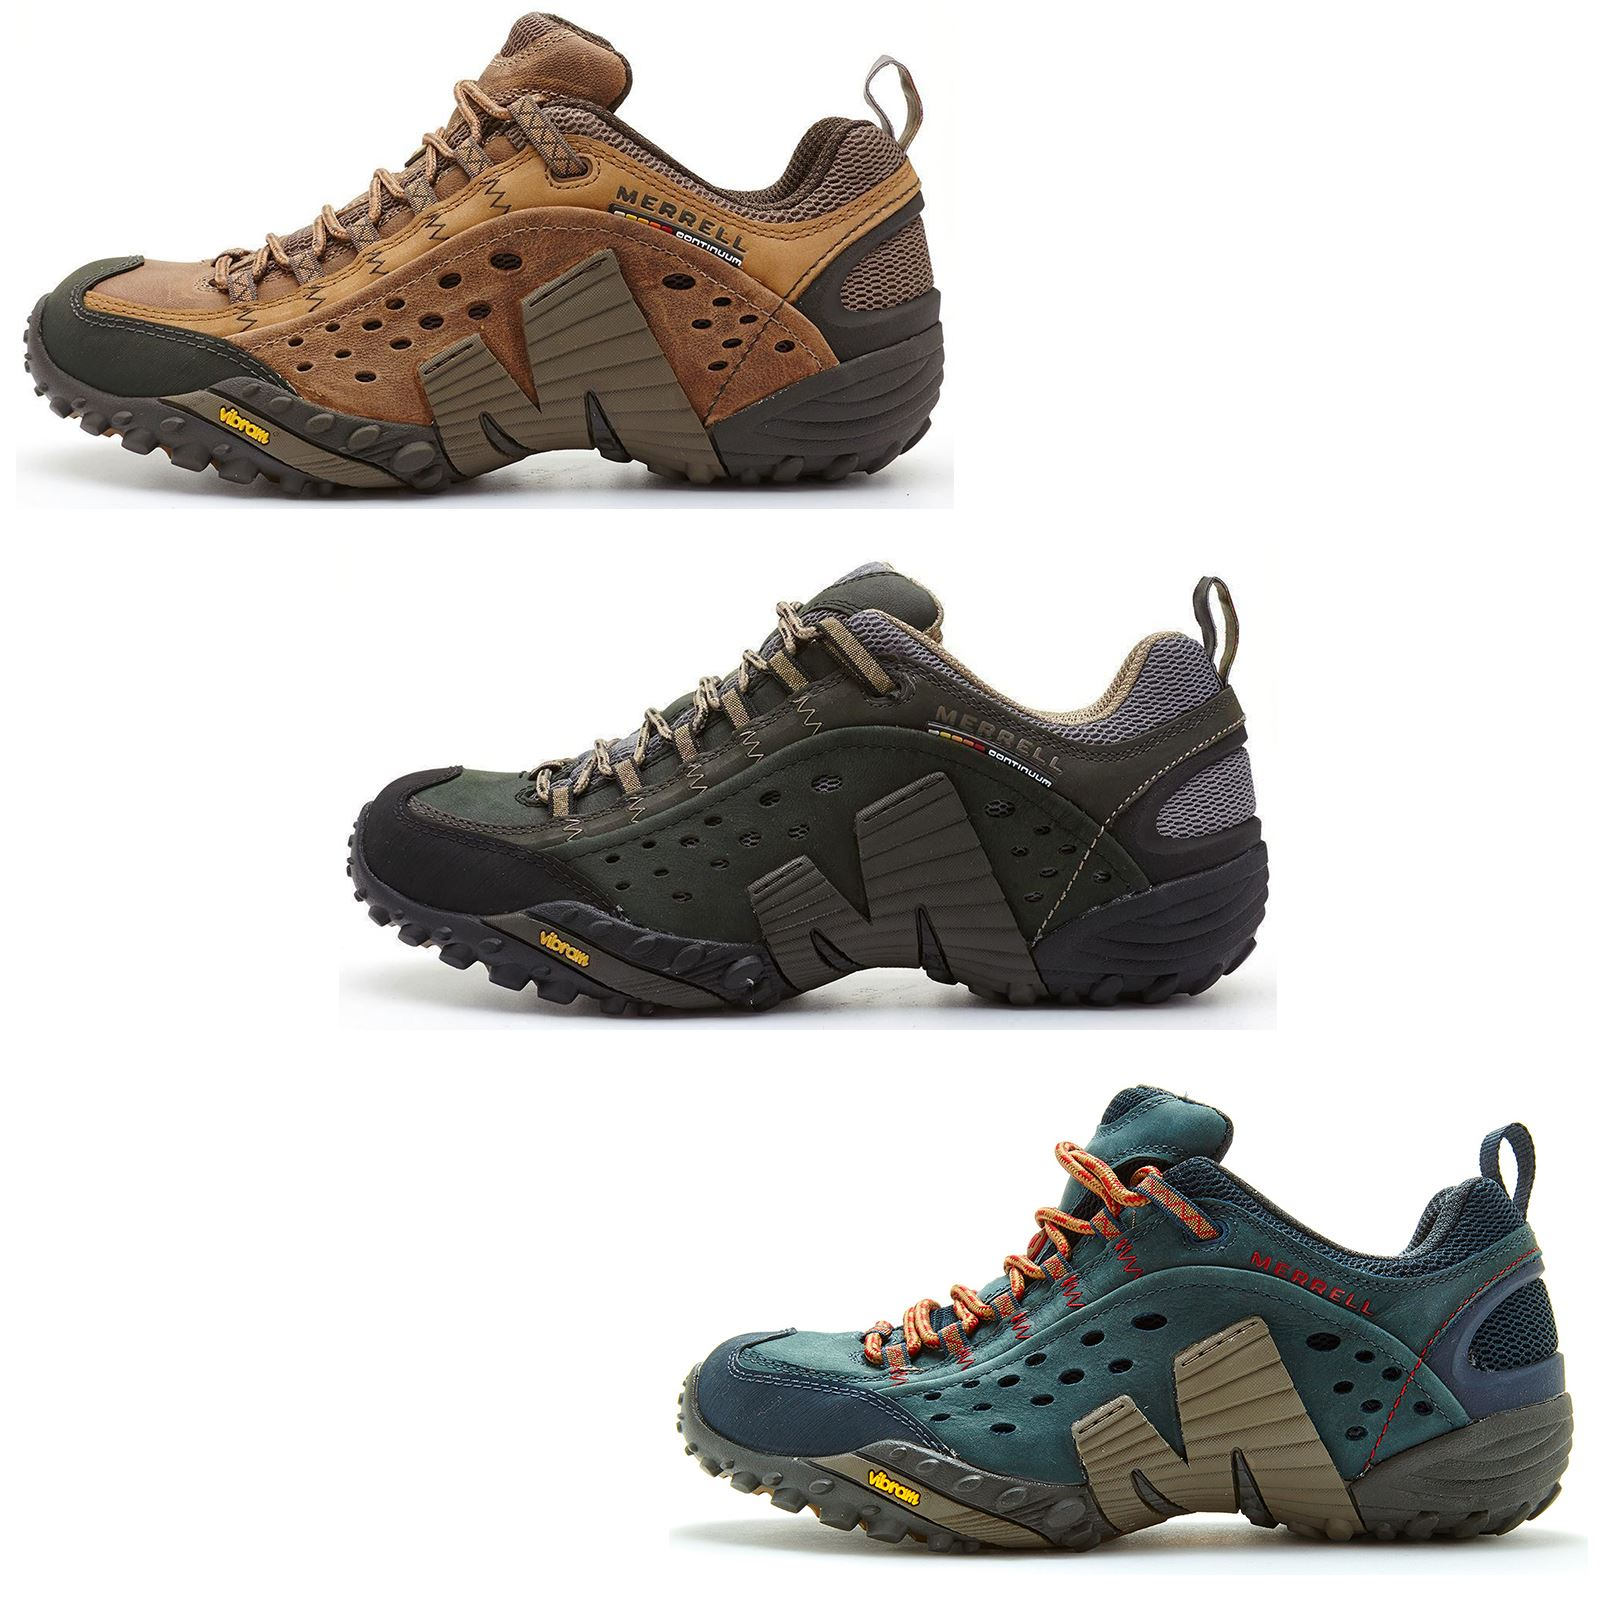 gloednieuw nieuwkomers 50% korting Details about Merrell Intercept Hiking Shoes in Moth Brown & Blue Wing &  Black